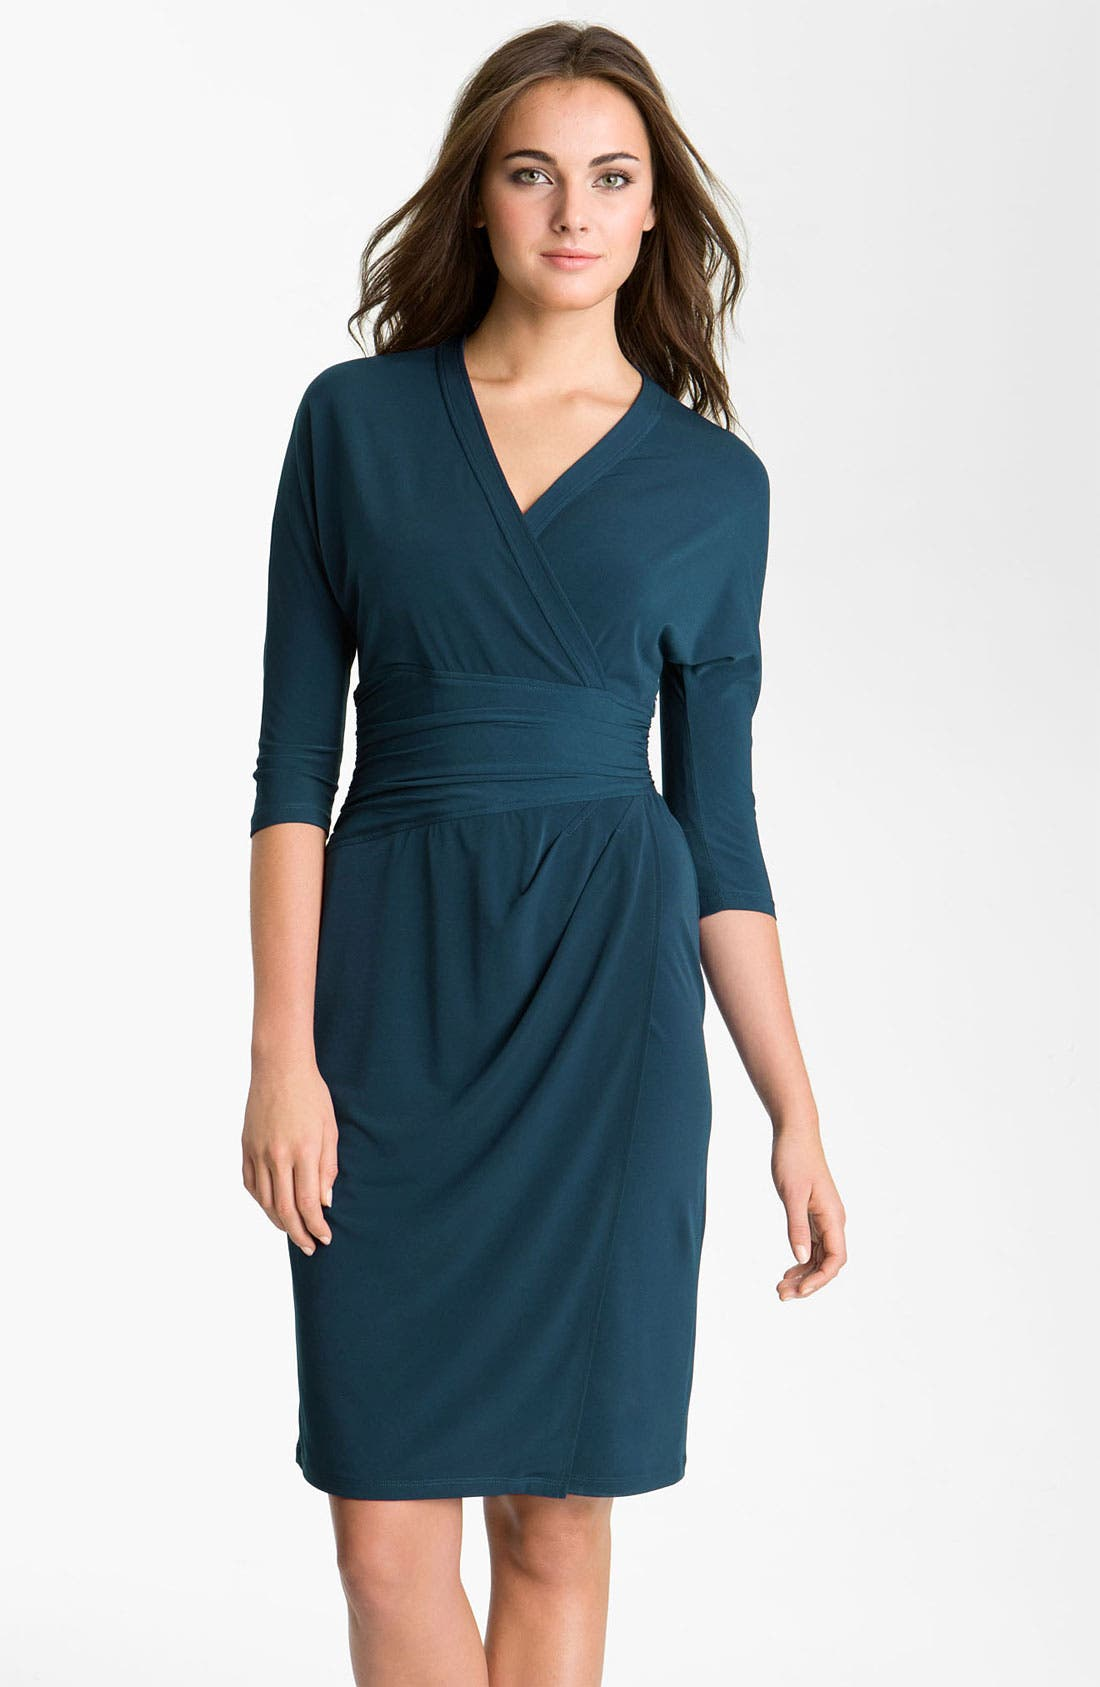 Main Image - Suzi Chin for Maggy Boutique Elbow Sleeve Faux Wrap Dress